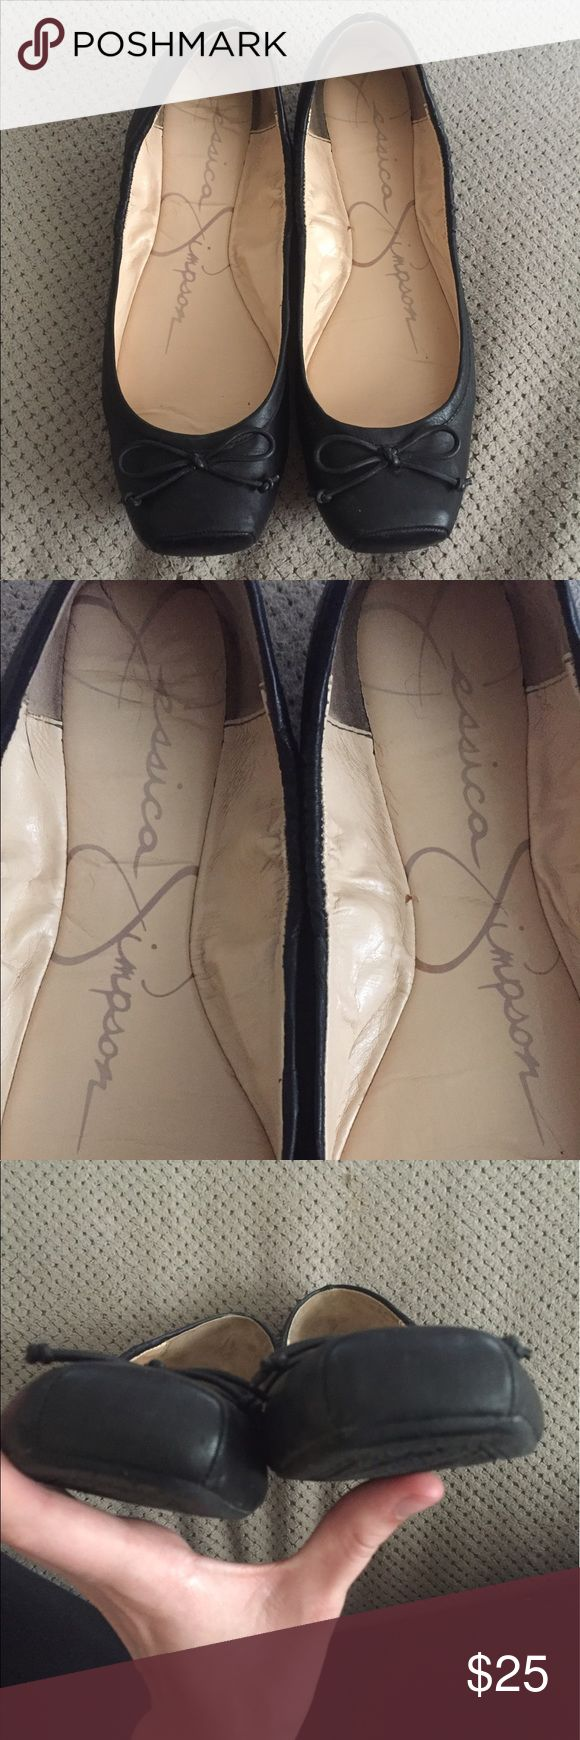 Jessica Simpson ballet flats Black leather square toe ballet flats in fantastic condition and super comfy! Used to wear these too work but am a stay at home mom now and they just sit in my closet. TONS of life left. Excellent used condition. Only wear is basic inside wear but outsides are perfect. Jessica Simpson Shoes Flats & Loafers